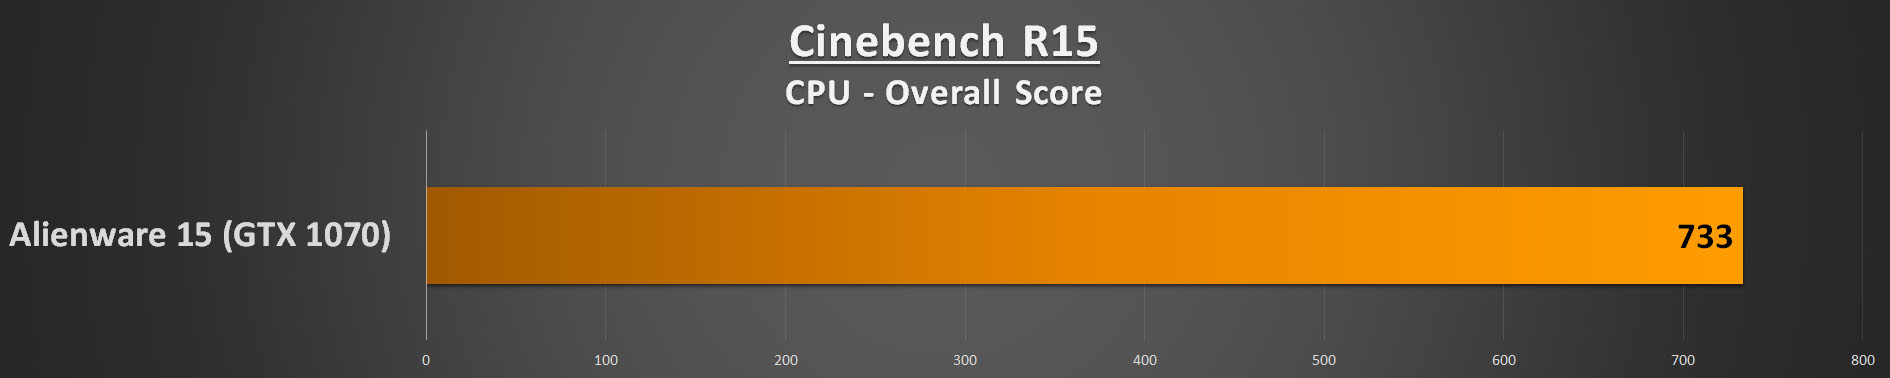 Alienware 15 R3 Performance - Cinebench R15 CPU